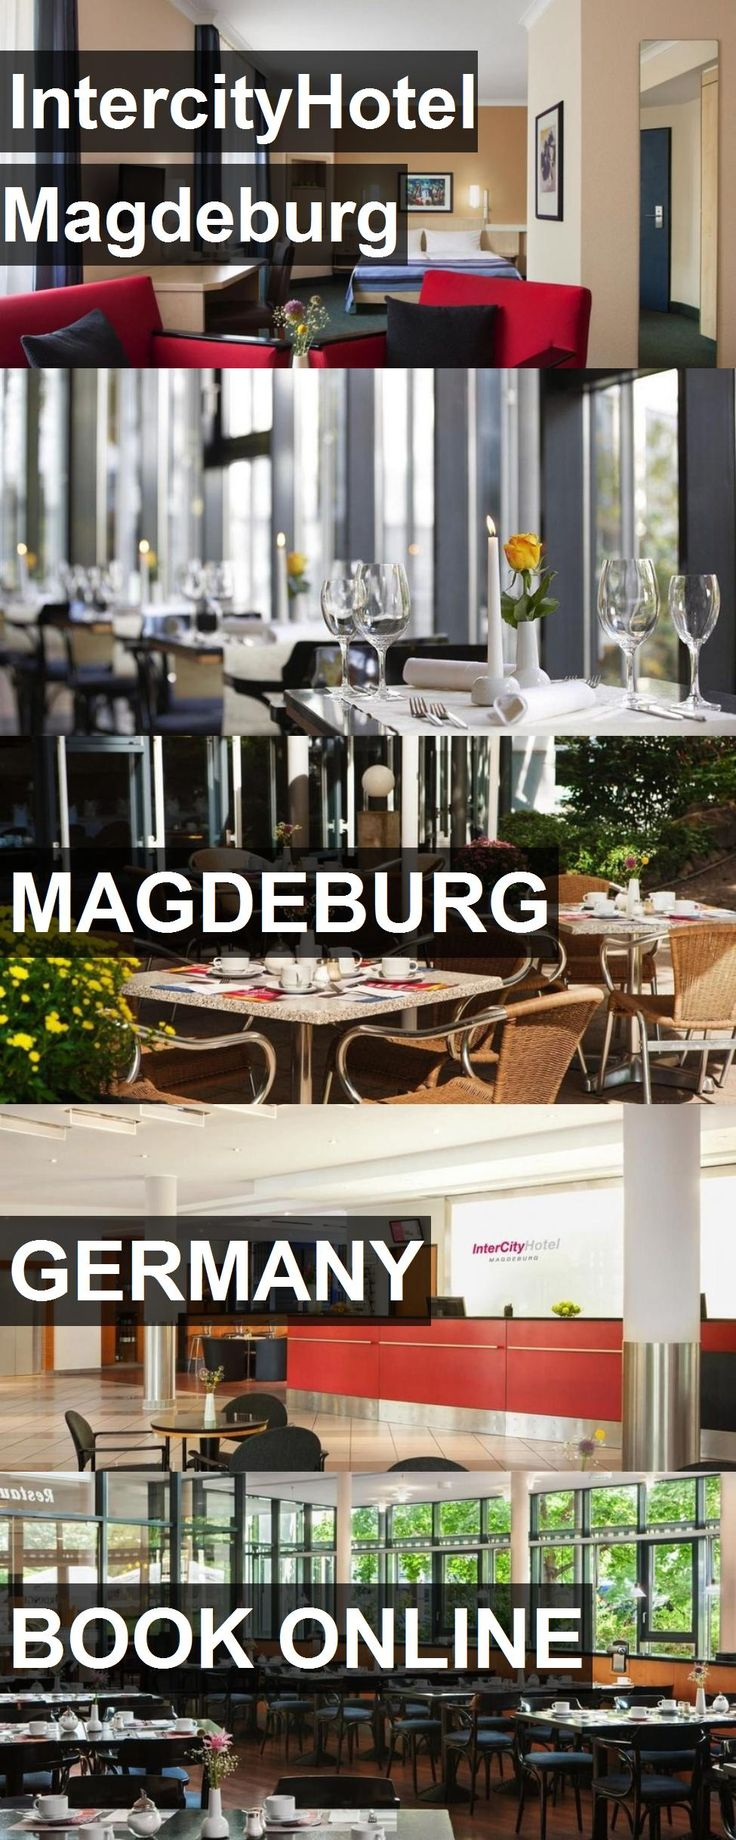 IntercityHotel Magdeburg in Magdeburg, Germany. For more information, photos, reviews and best prices please follow the link. #Germany #Magdeburg #travel #vacation #hotel